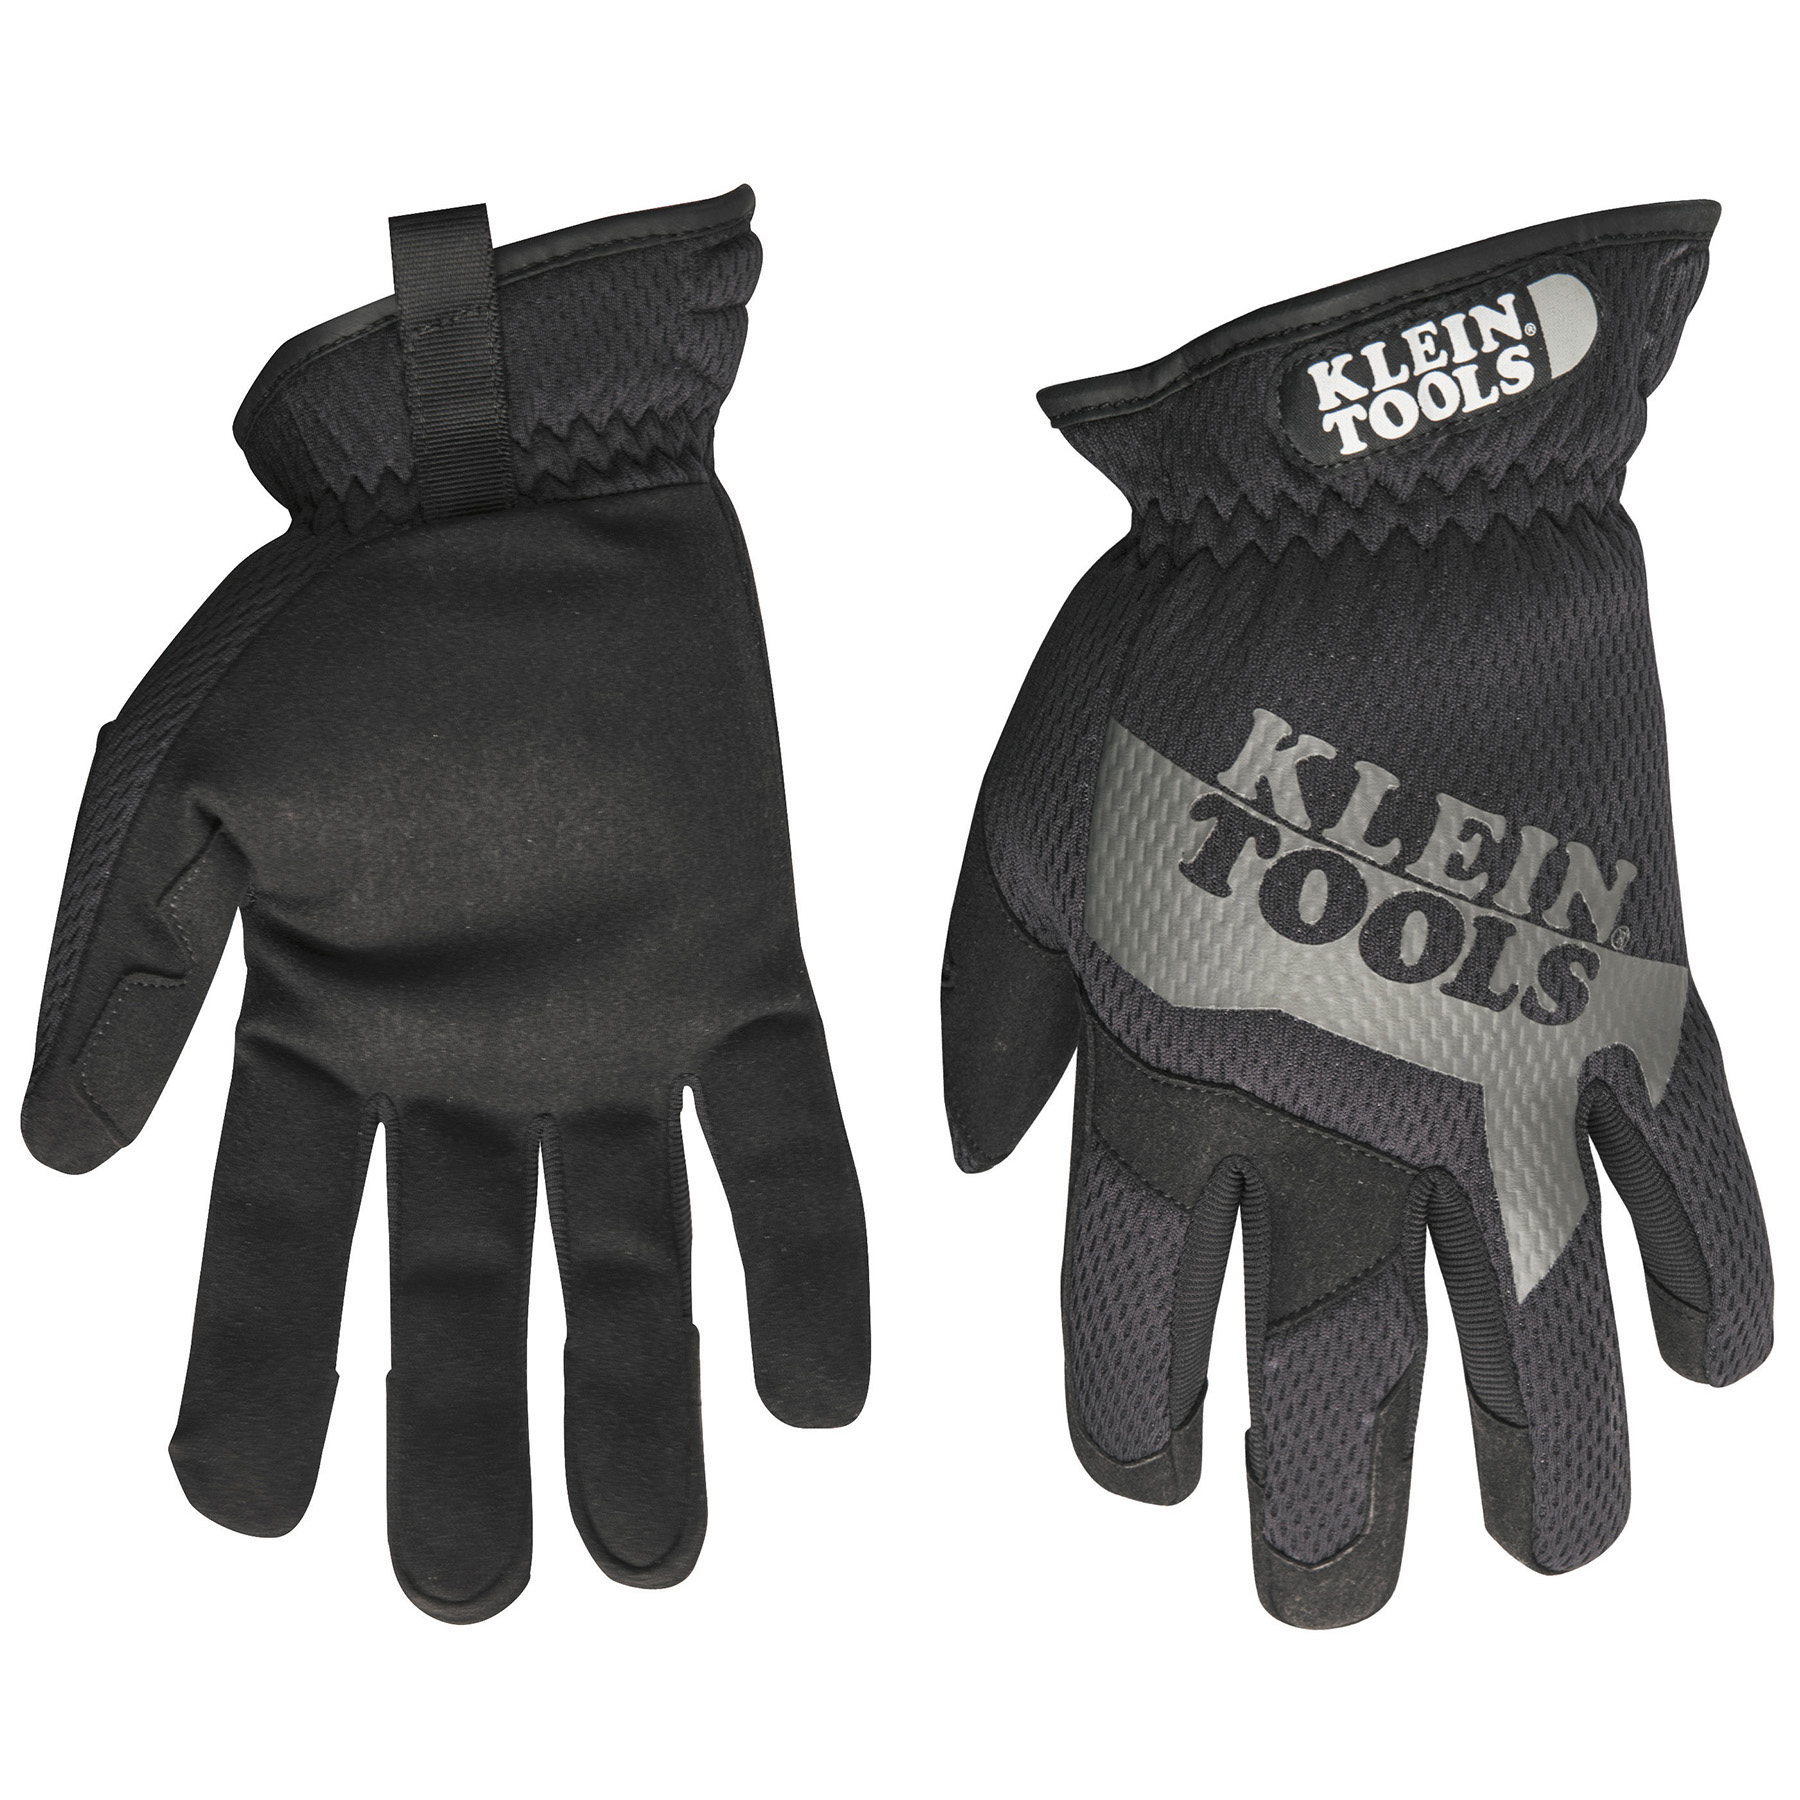 KLEIN TOOLS Safety Gear